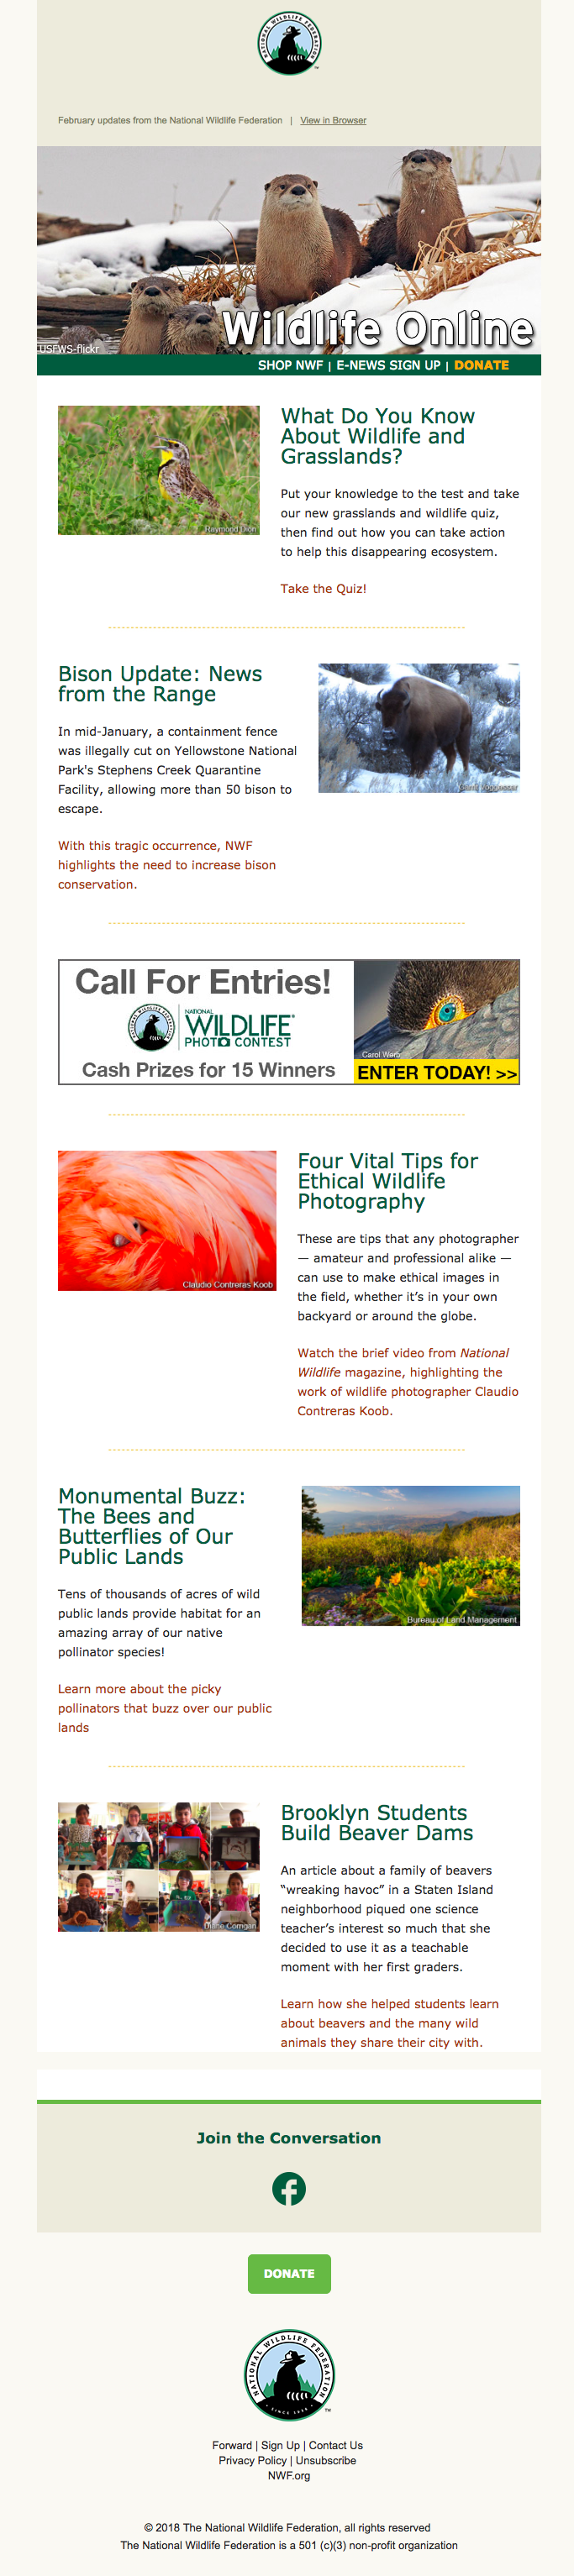 National Wildlife Federation e-newsletter example